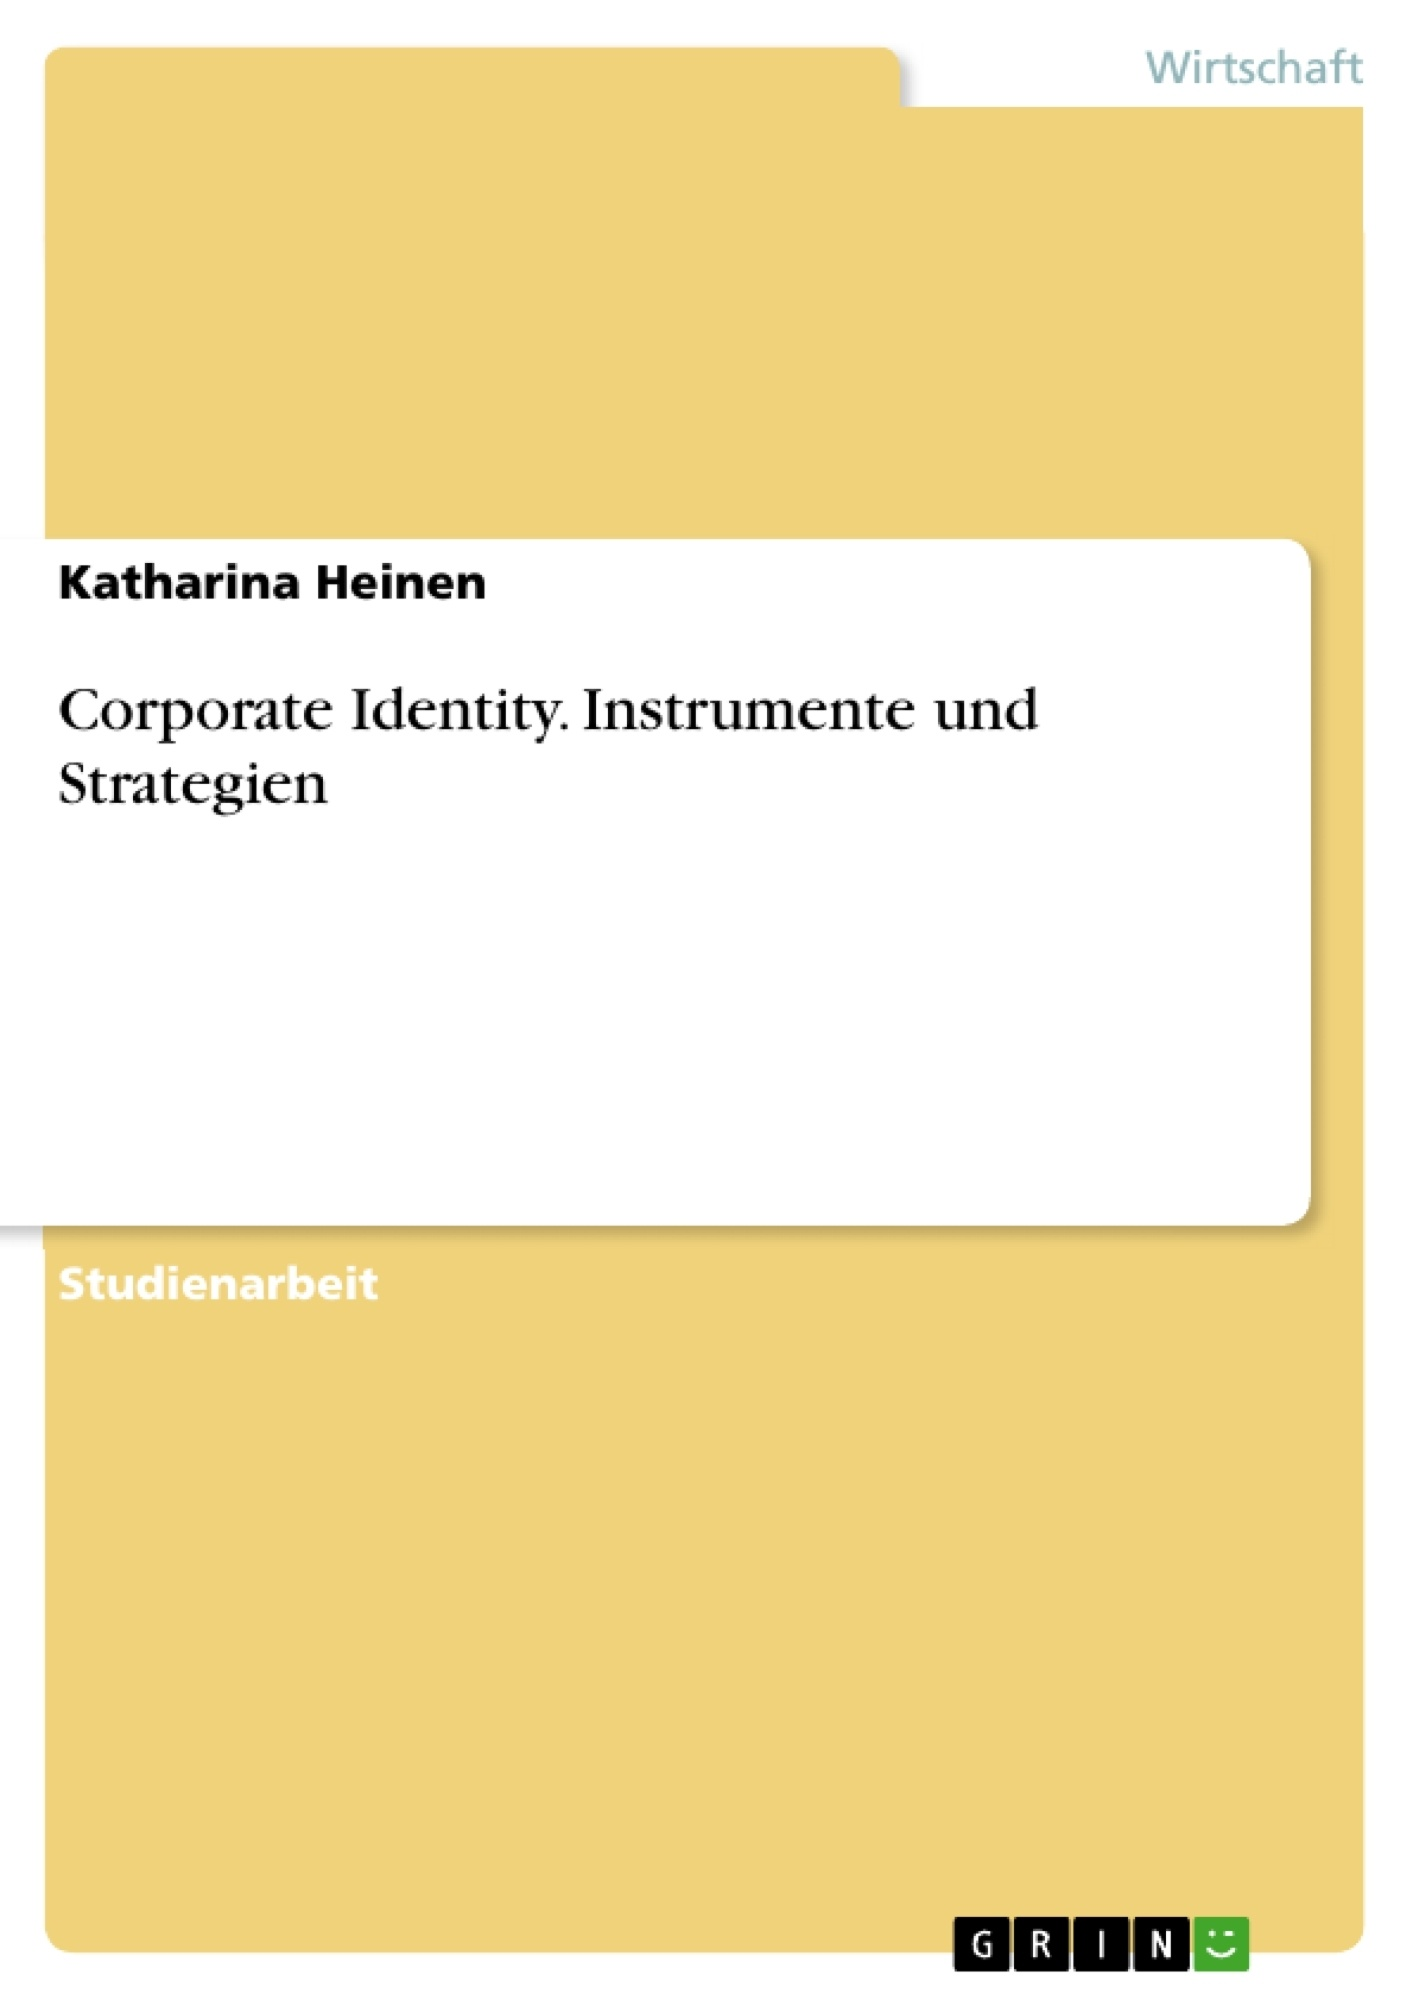 Titel: Corporate Identity. Instrumente und Strategien